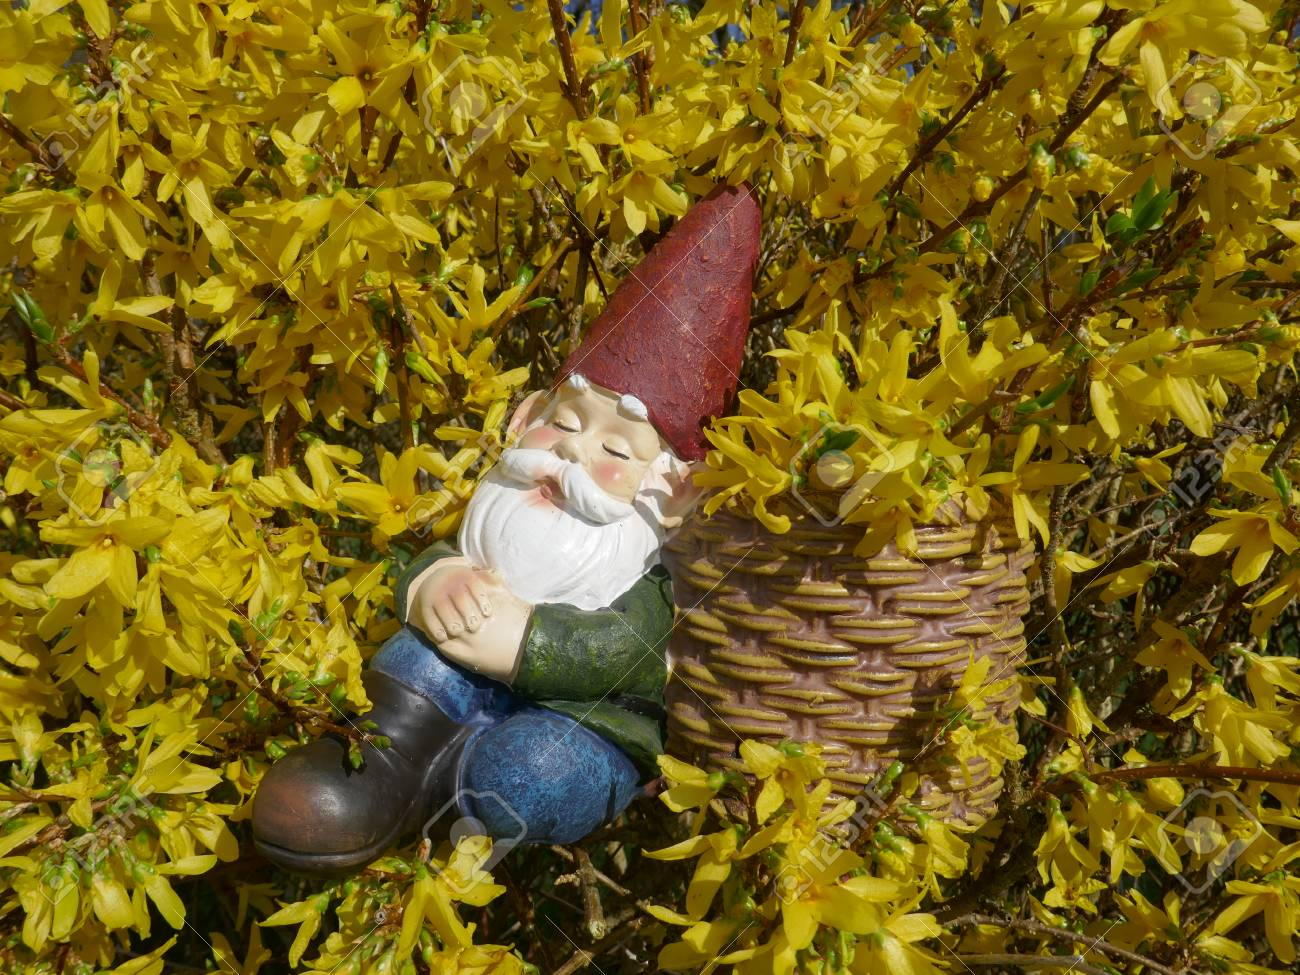 Asleep Garden Gnome Sits In A Blooming Forsythia Bush And Leans ...